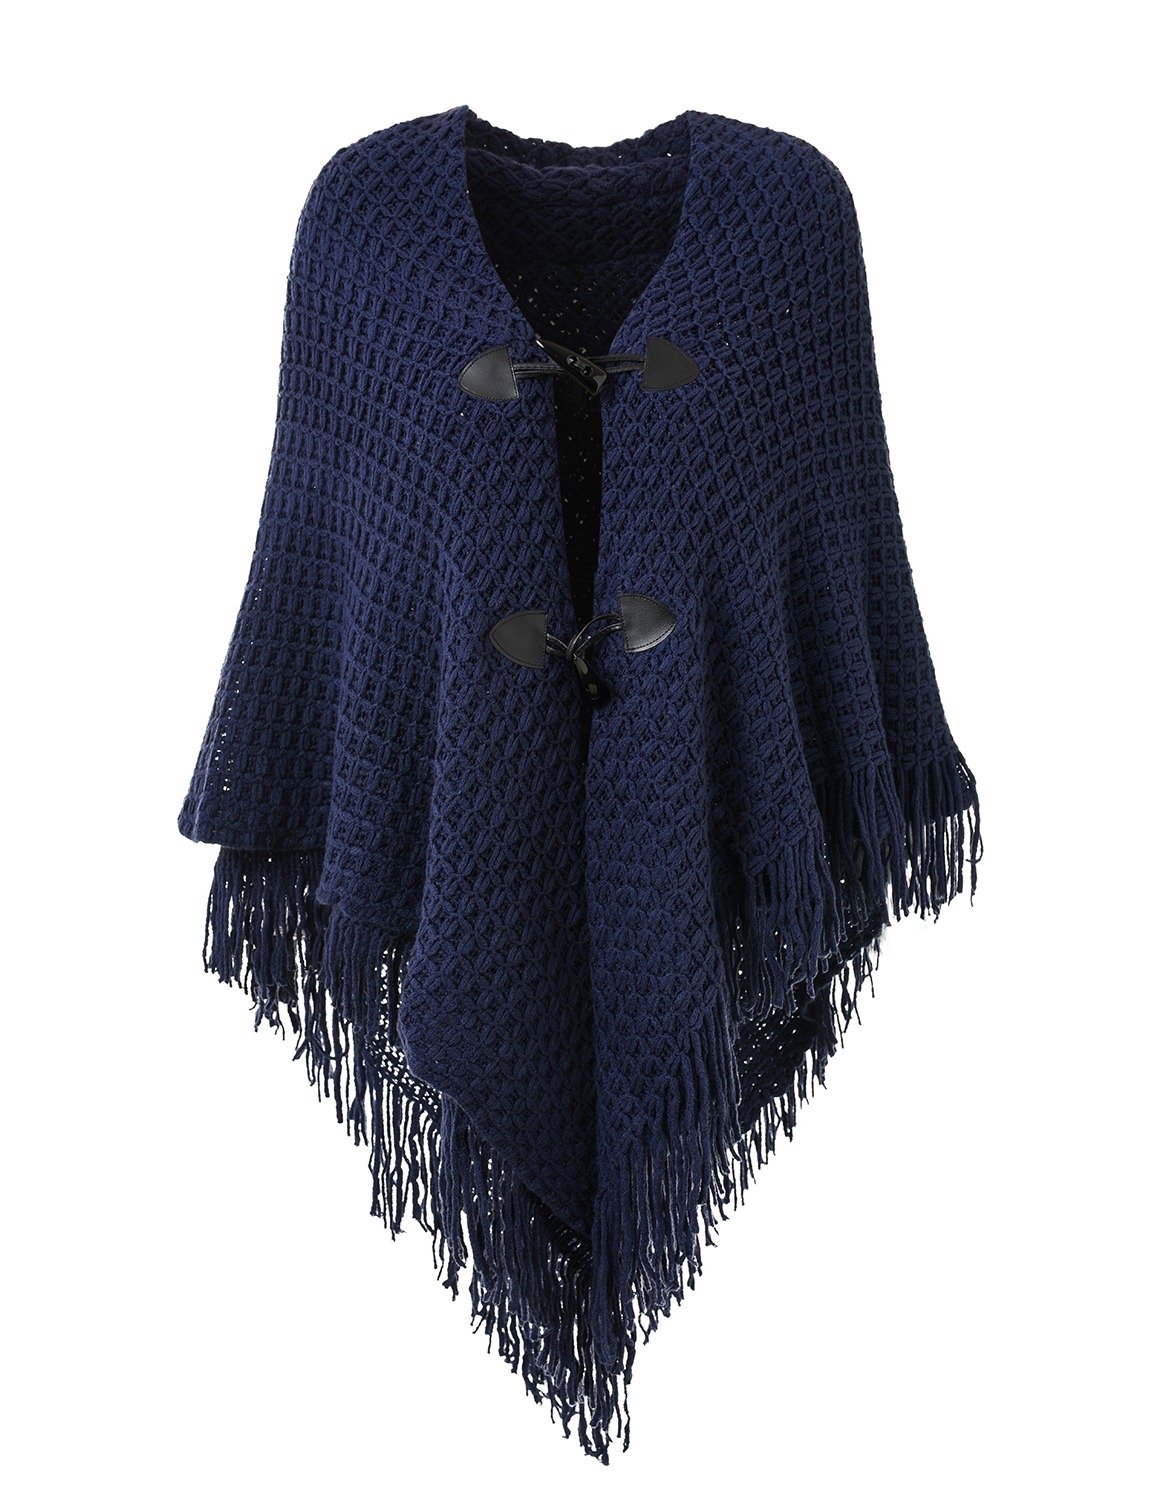 Ferand Women's Loose Fitting Poncho Cape Shawl with Stylish Horn Buttons, V Neckline and V Hem, Navy Blue (Larger & Thicker Style)